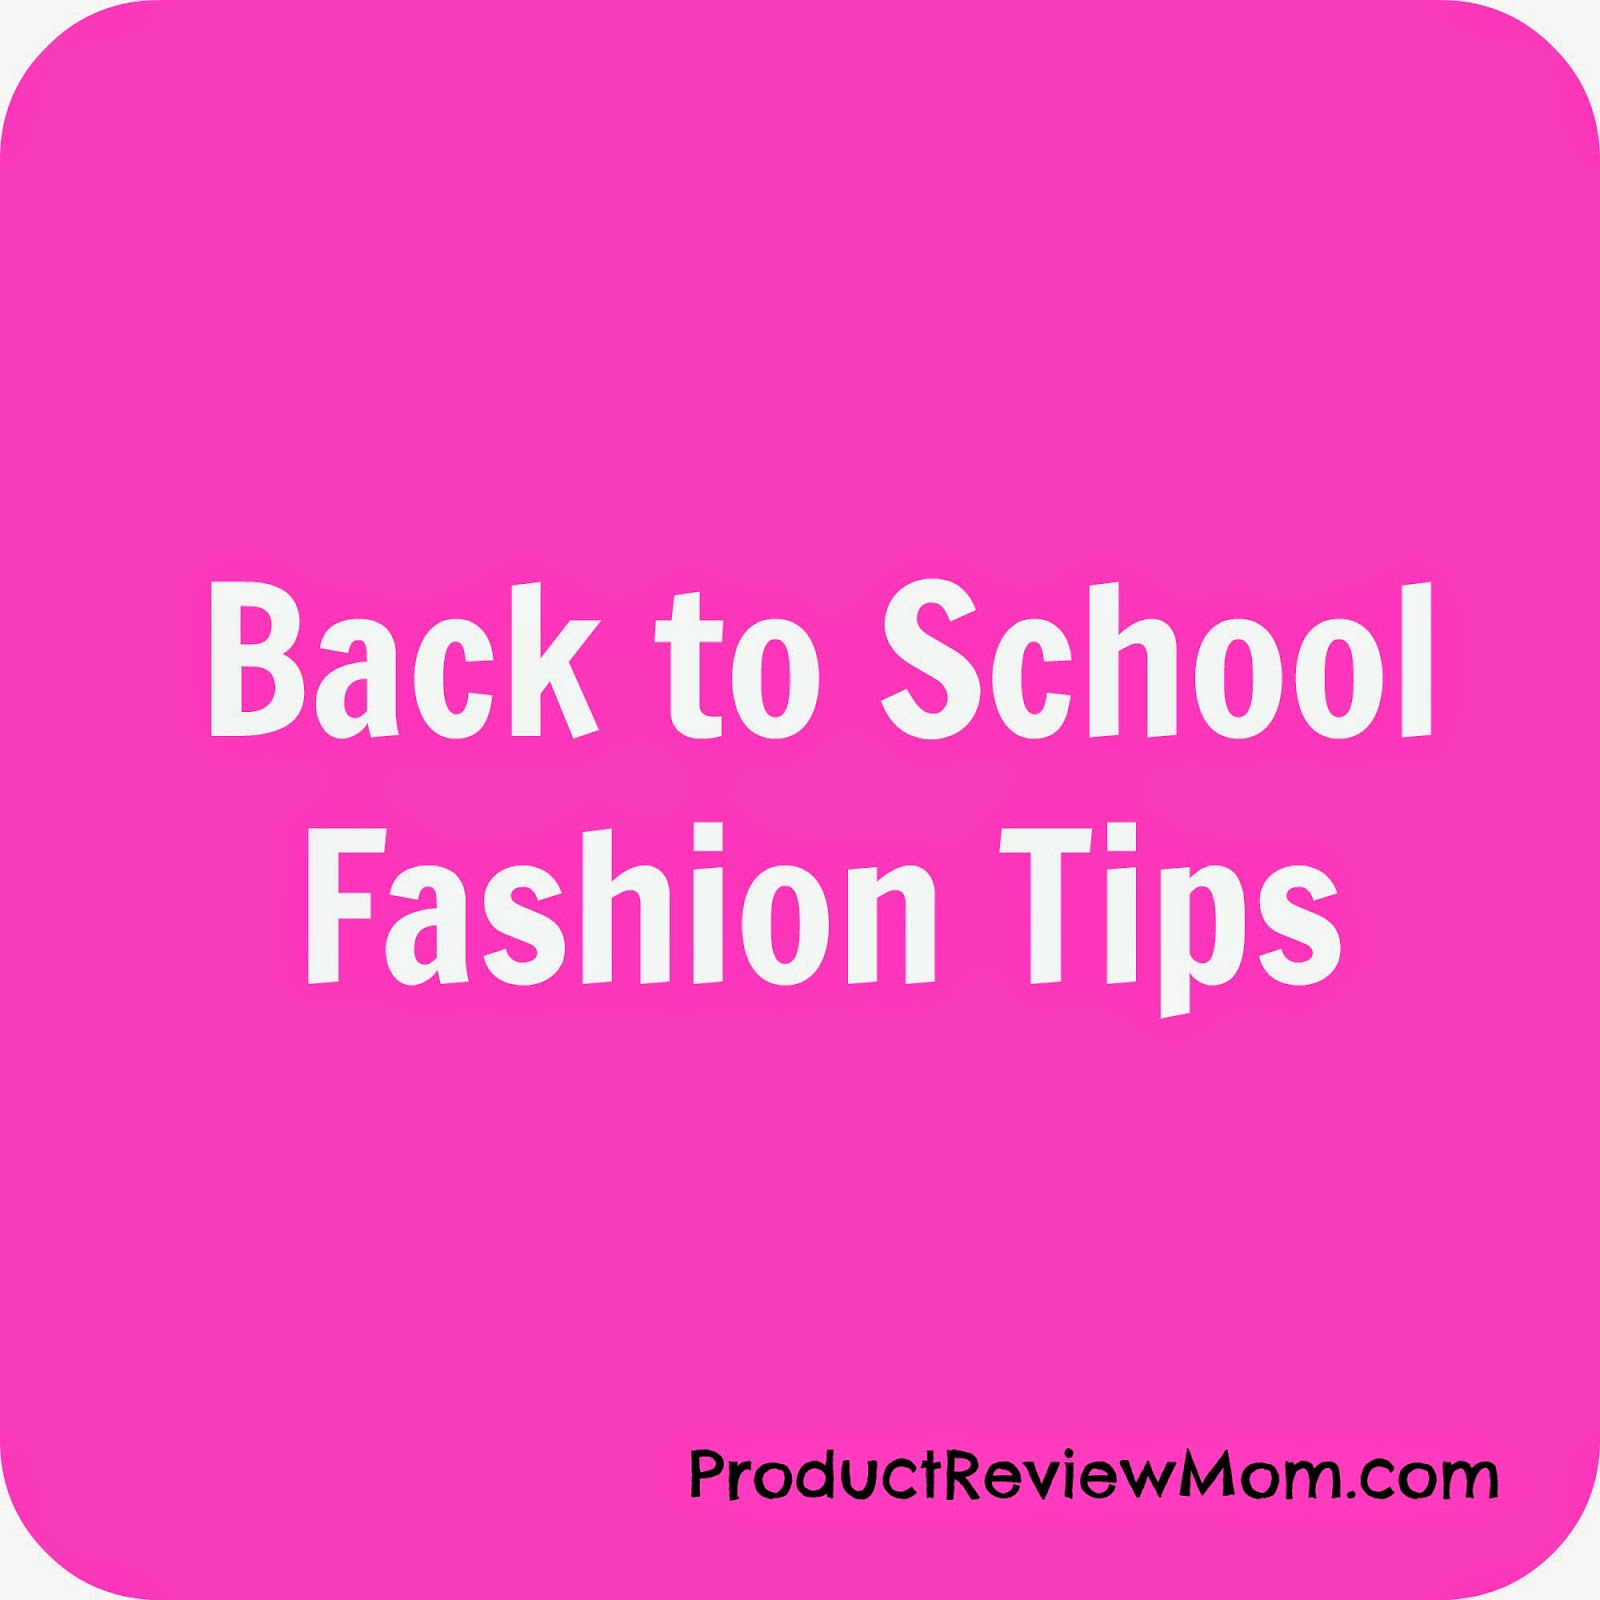 Back to School Fashion Tips #BacktoSchoolTips